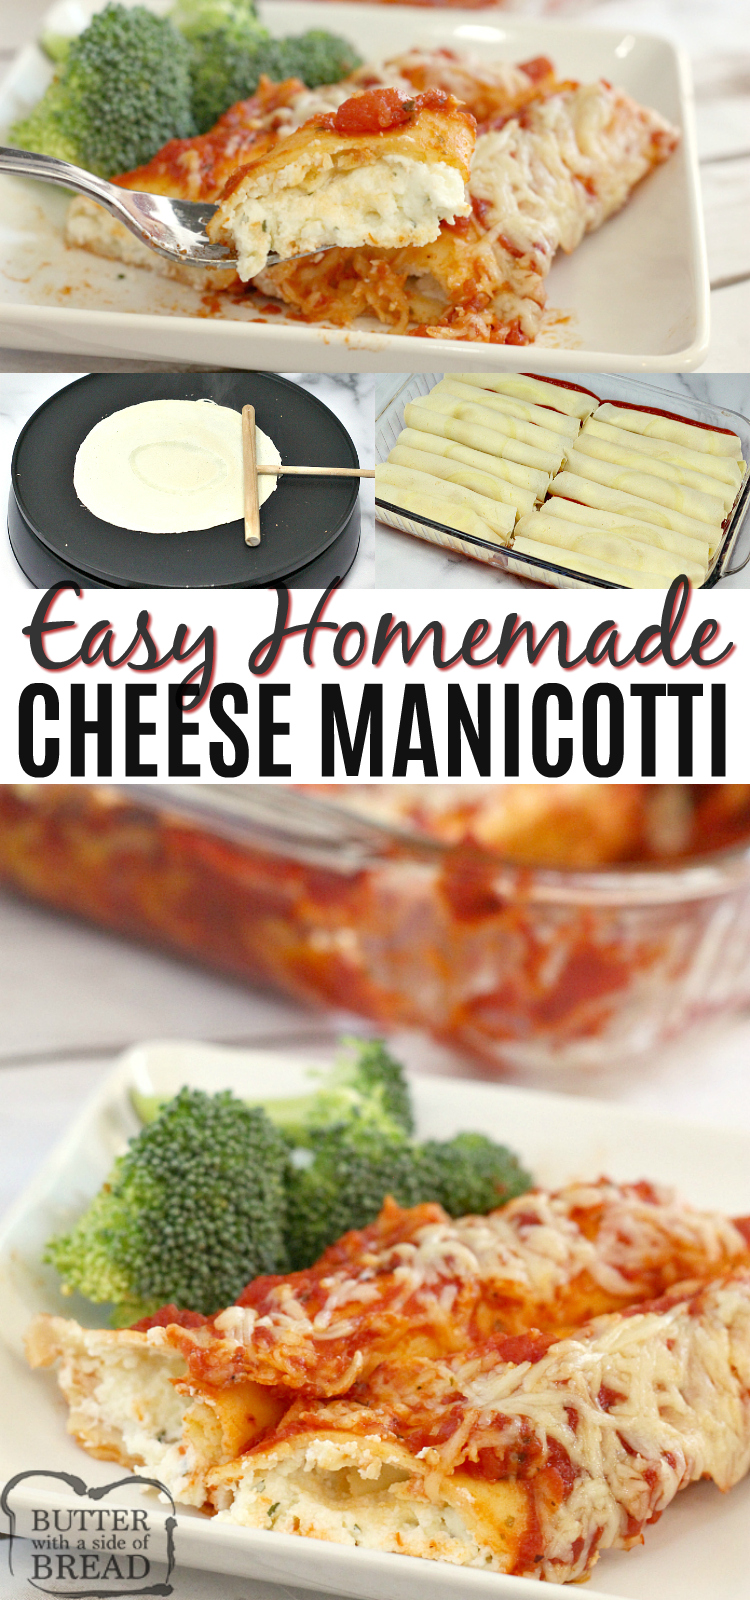 Easy Cheese Manicotti recipe that is made with homemade crepes for the noodles and then stuffed with a cheesy filling. This simple Italian dish comes together easily for a delicious meatless meal that the whole family will enjoy!